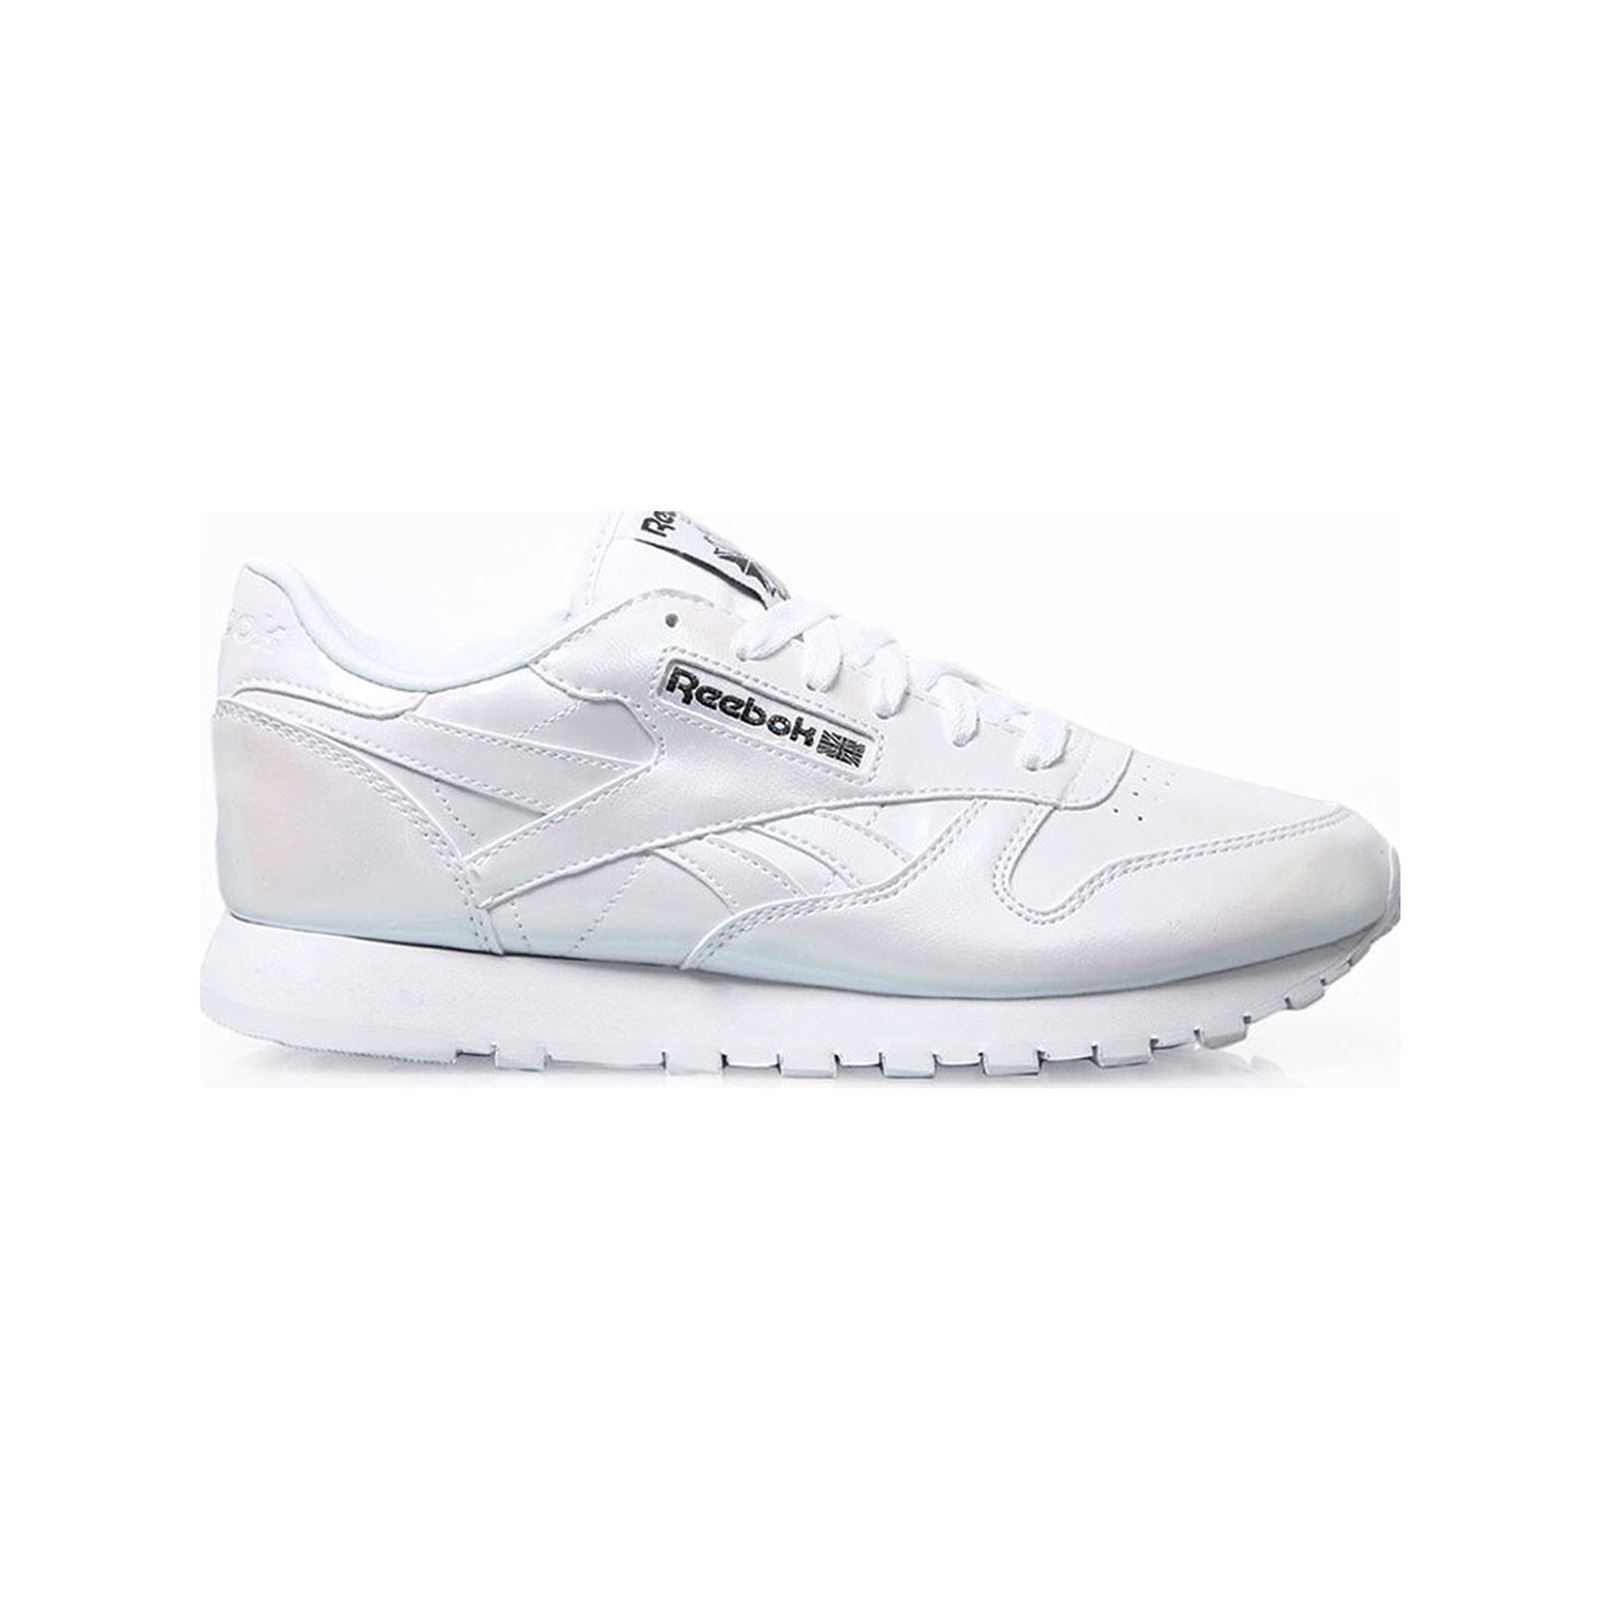 in pelle bianco CLASSICS REEBOK Sneakers CL LTHR PP 1Sg8qp